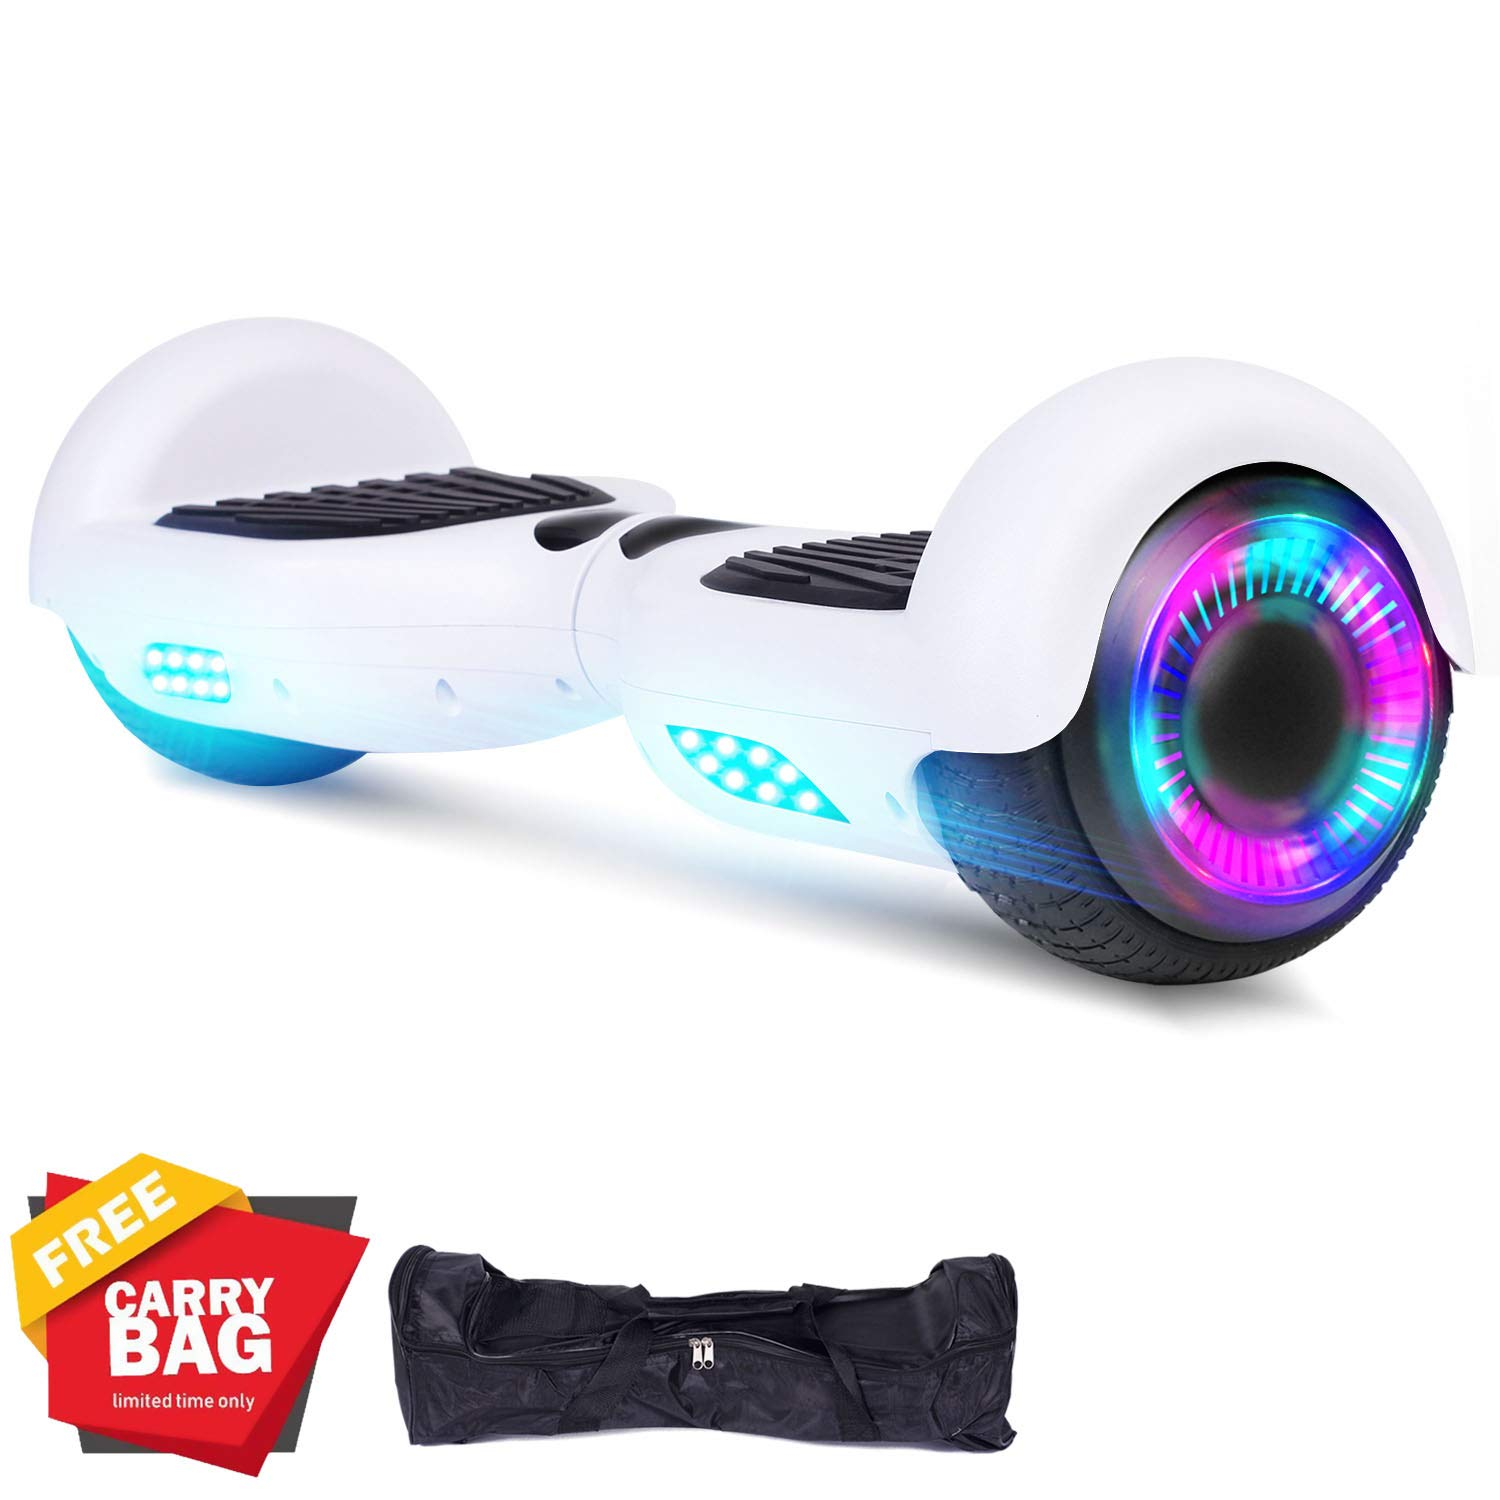 SWEETBUY Hoverboards UL Certified 6.5 Smart Scooter Two-Wheel self Balancing Electric Scooter Light Free Bag and Charger Included